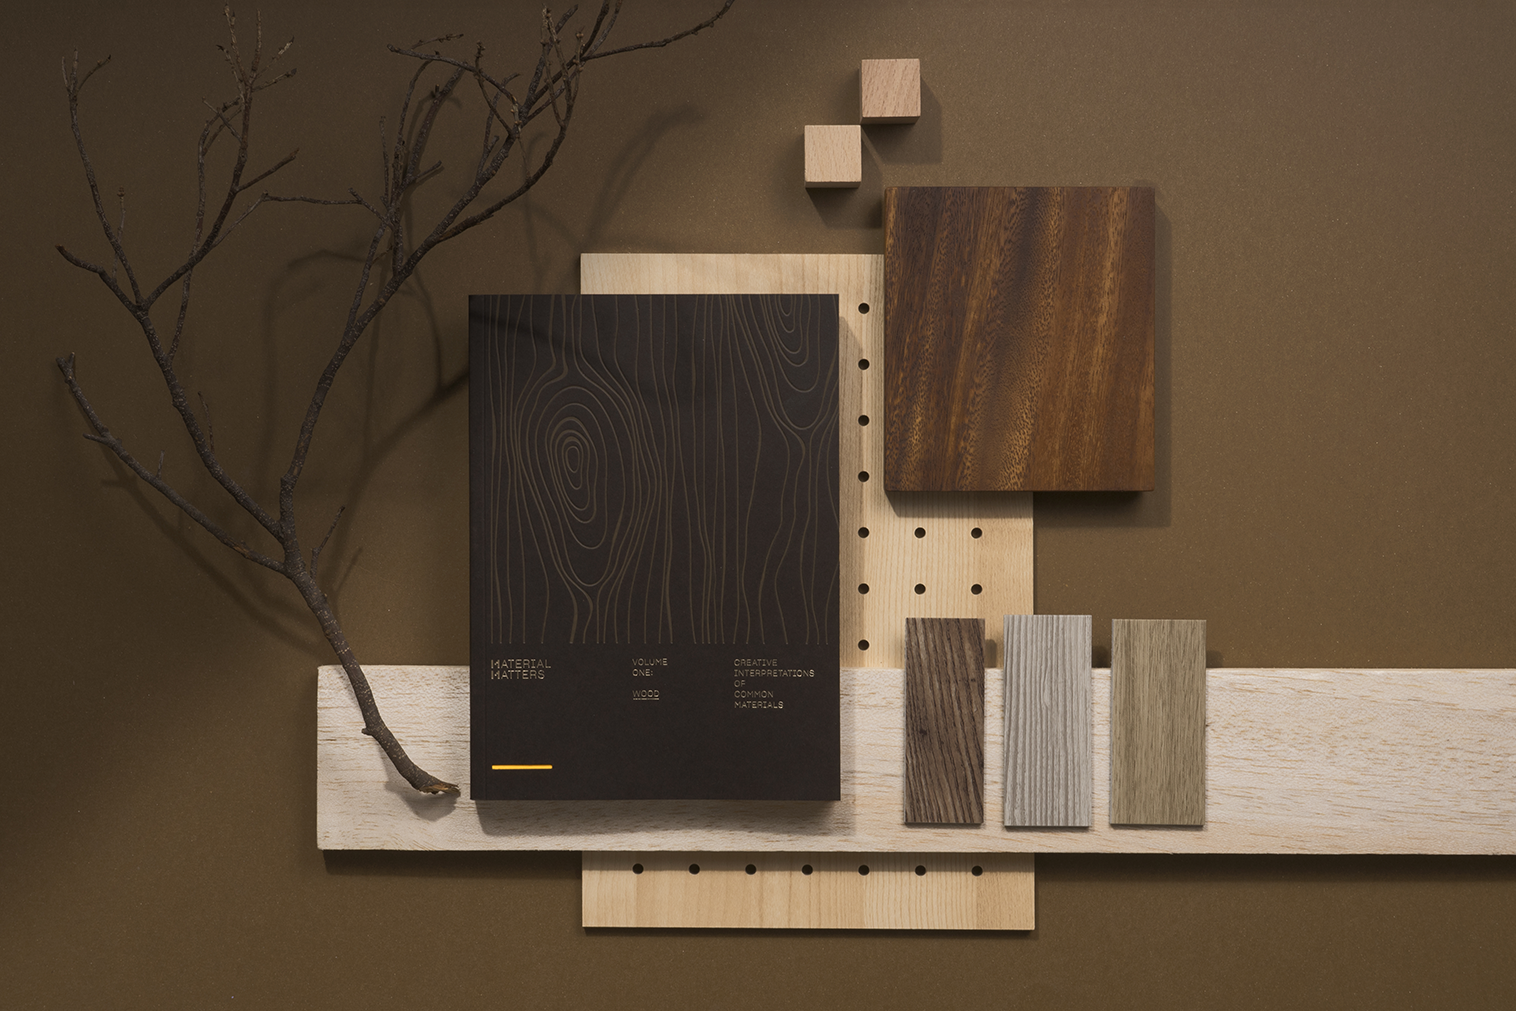 From Material Matters 01: Wood copyright Victionary 2019